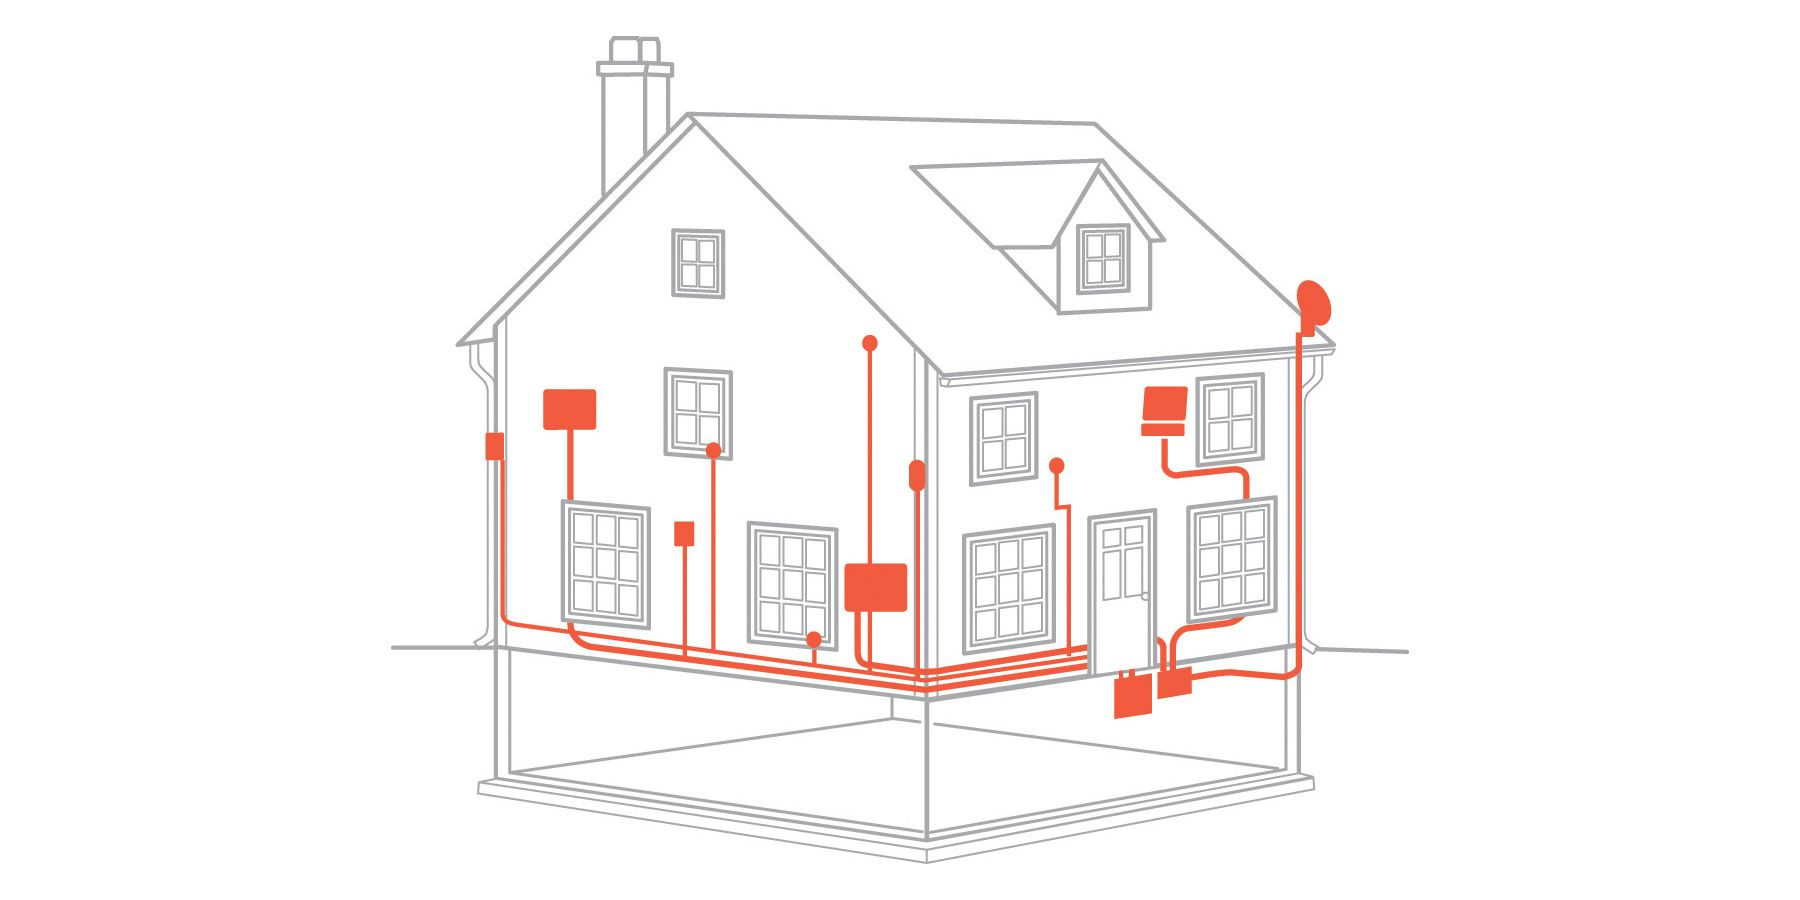 medium resolution of setting up an electrical system for maximum safety and convenience